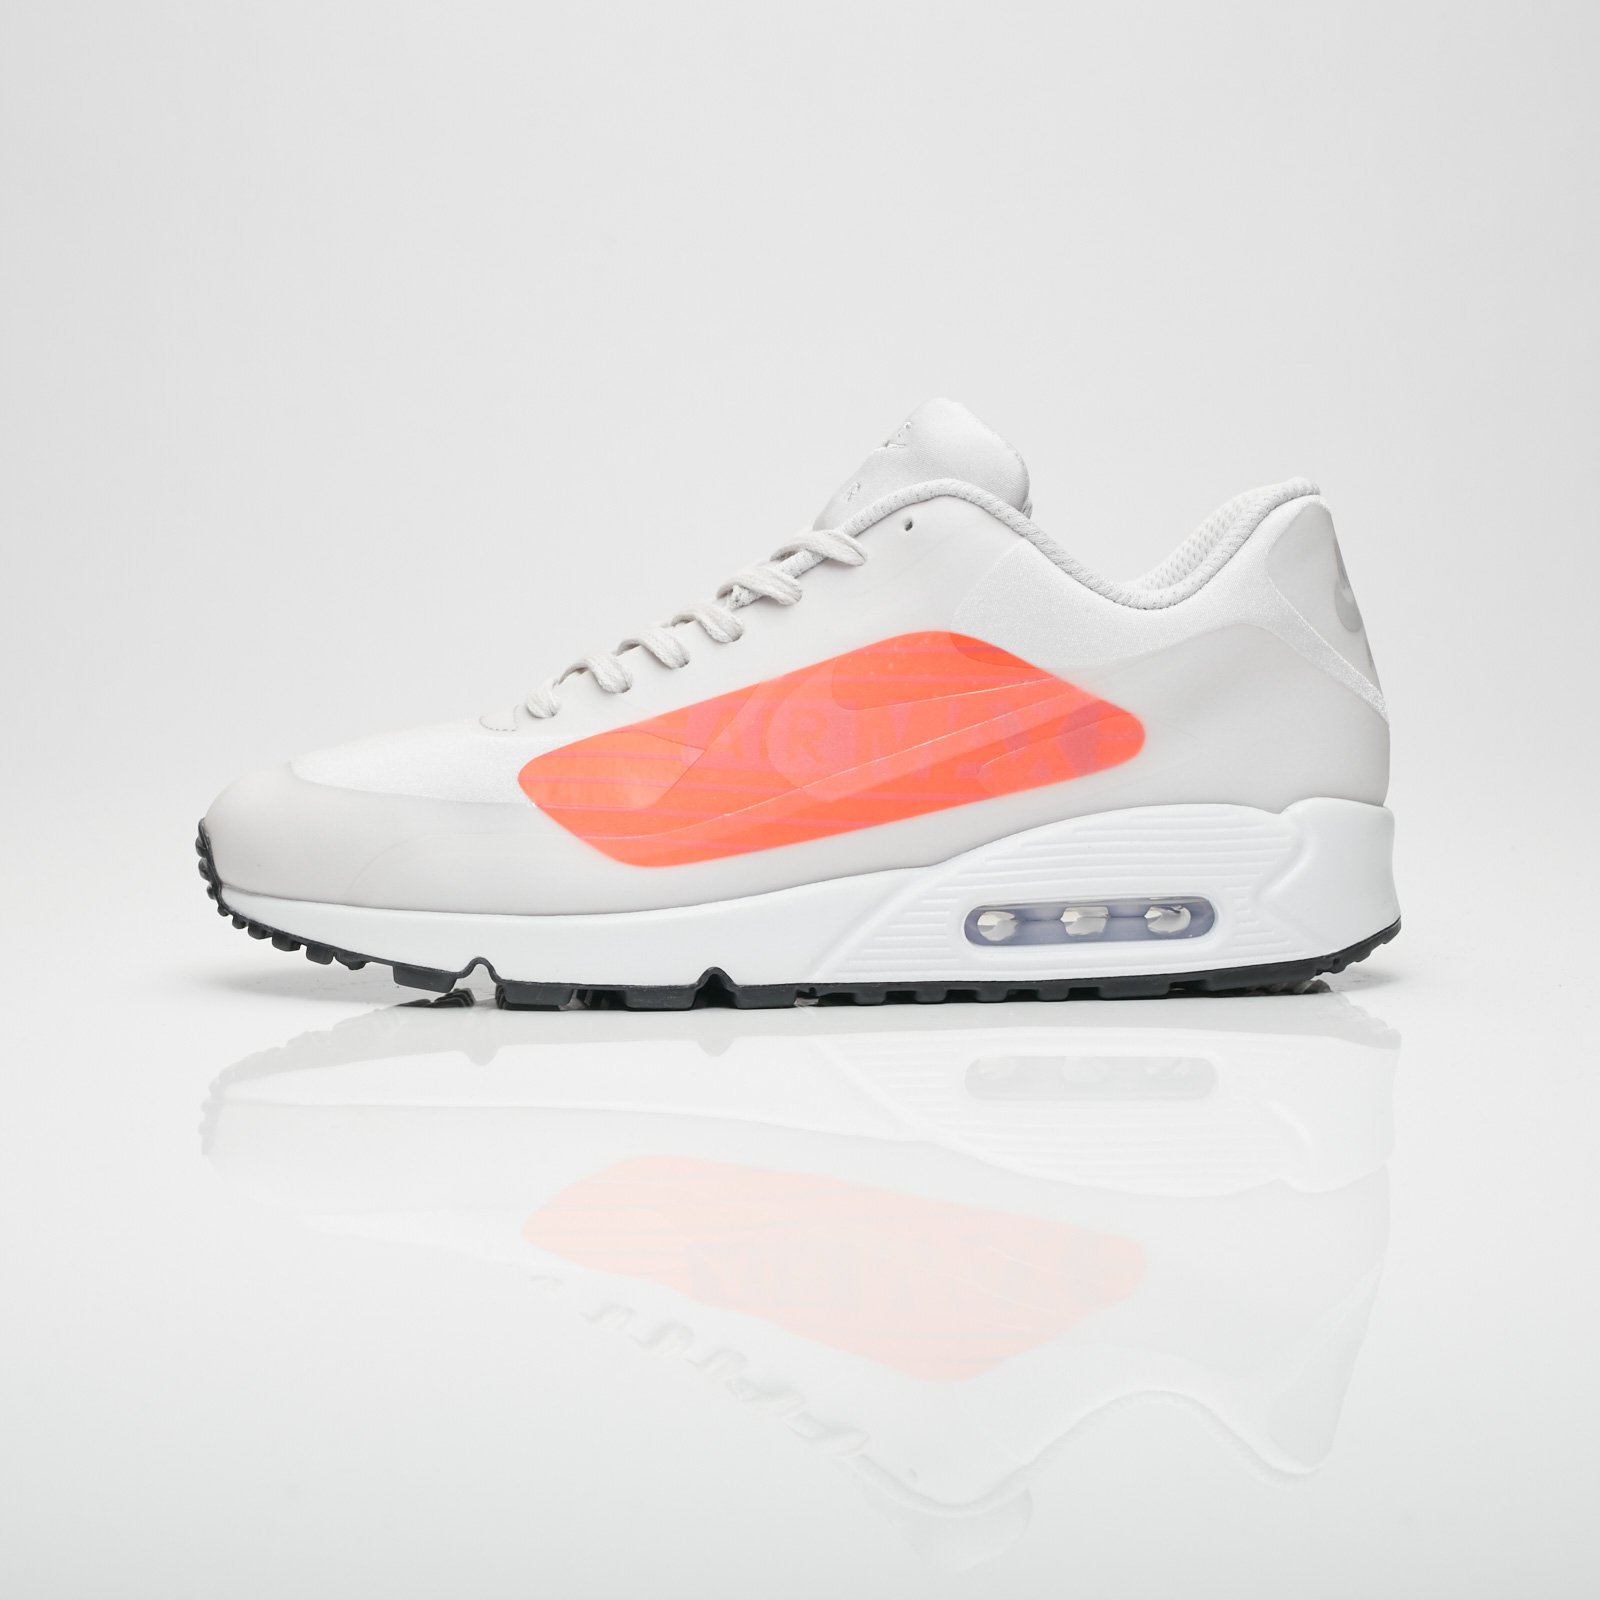 competitive price 4b3bd ccd40 Nike Air Max 90 NS GPX - Aj7182-001 - Sneakersnstuff | sneakers &  streetwear online since 1999